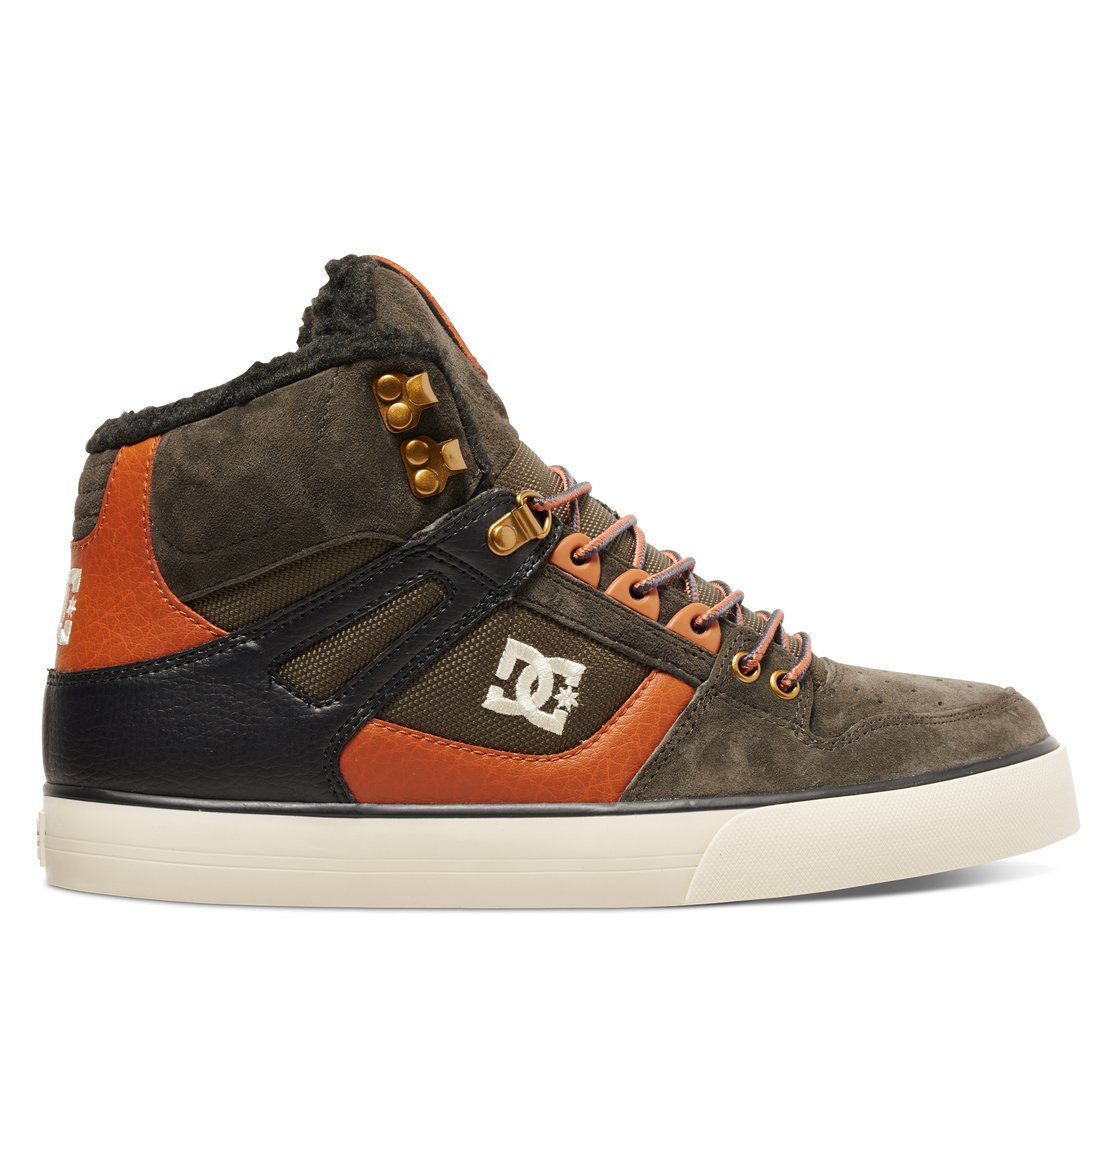 dc shoes spartan wc wnt chaussures montantes homme adys400005 ebay. Black Bedroom Furniture Sets. Home Design Ideas